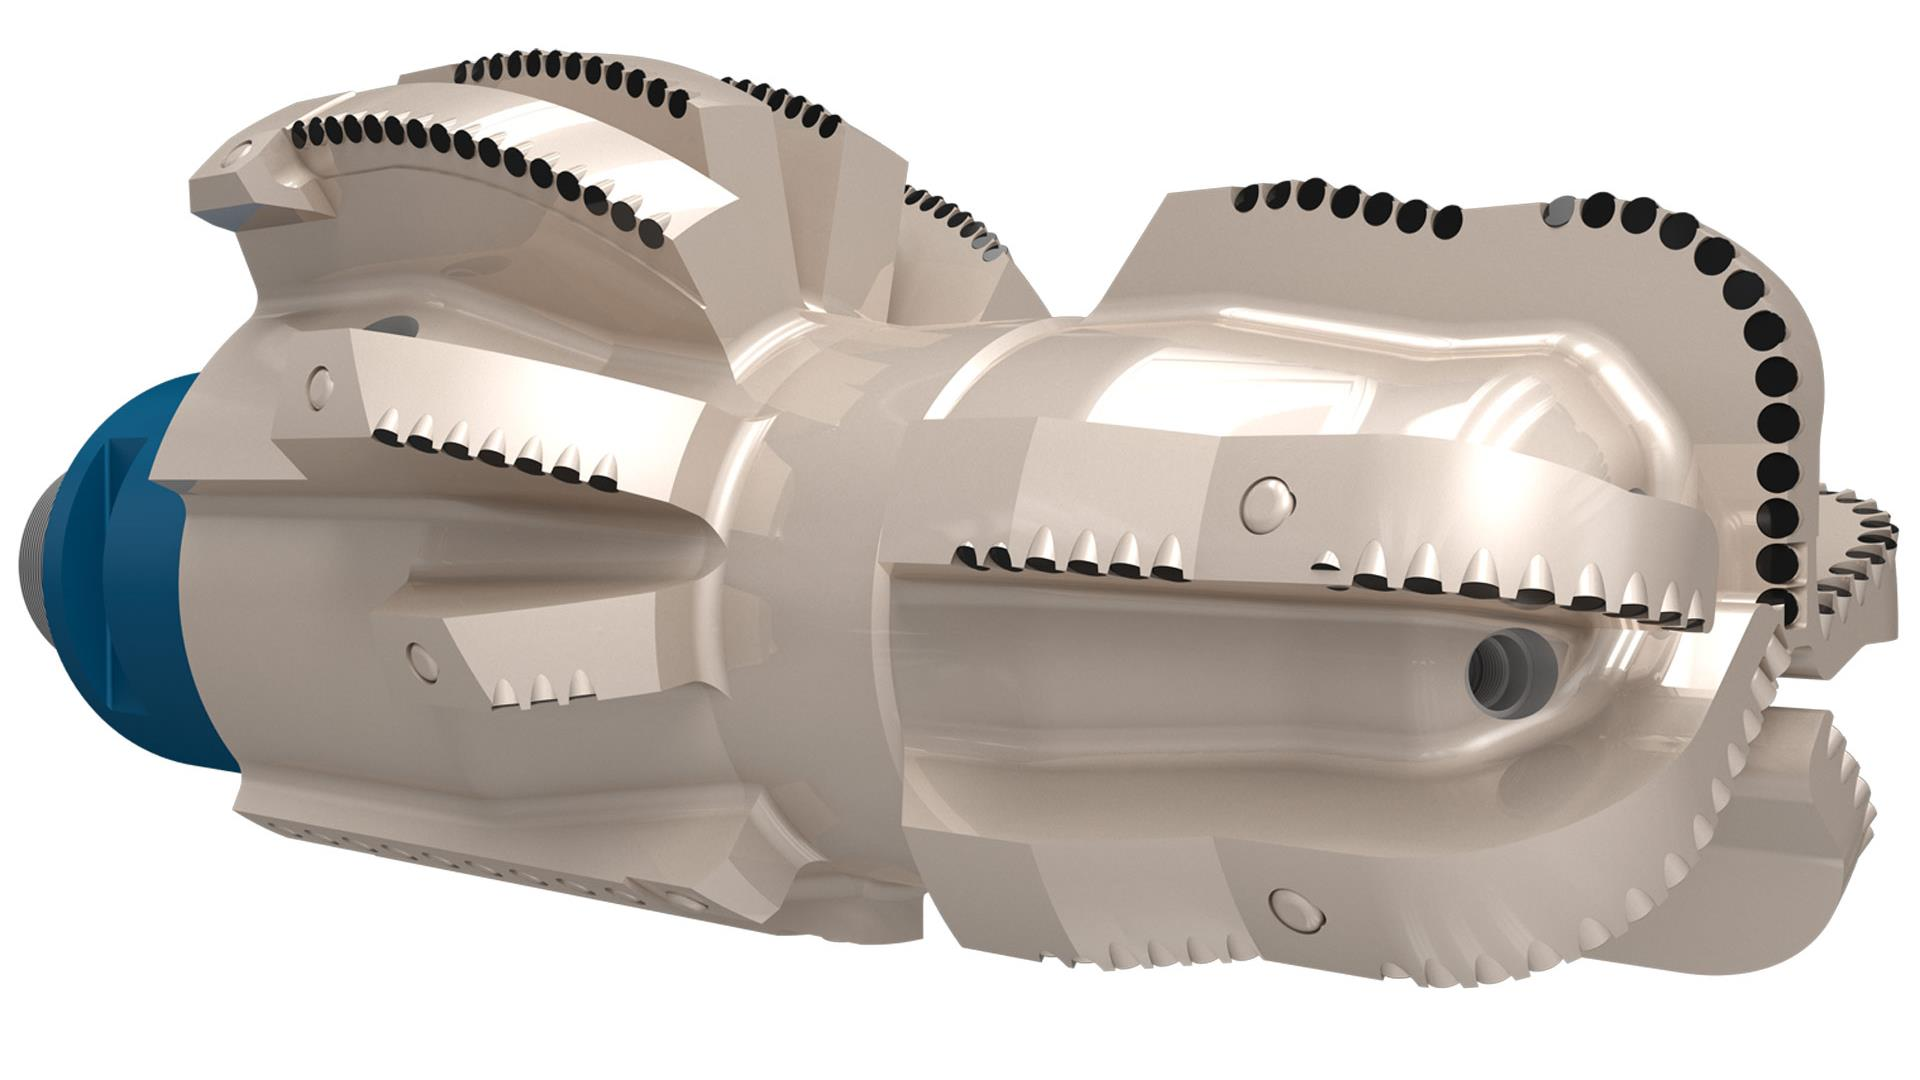 A render of a Tektonic Bi-Center Bit